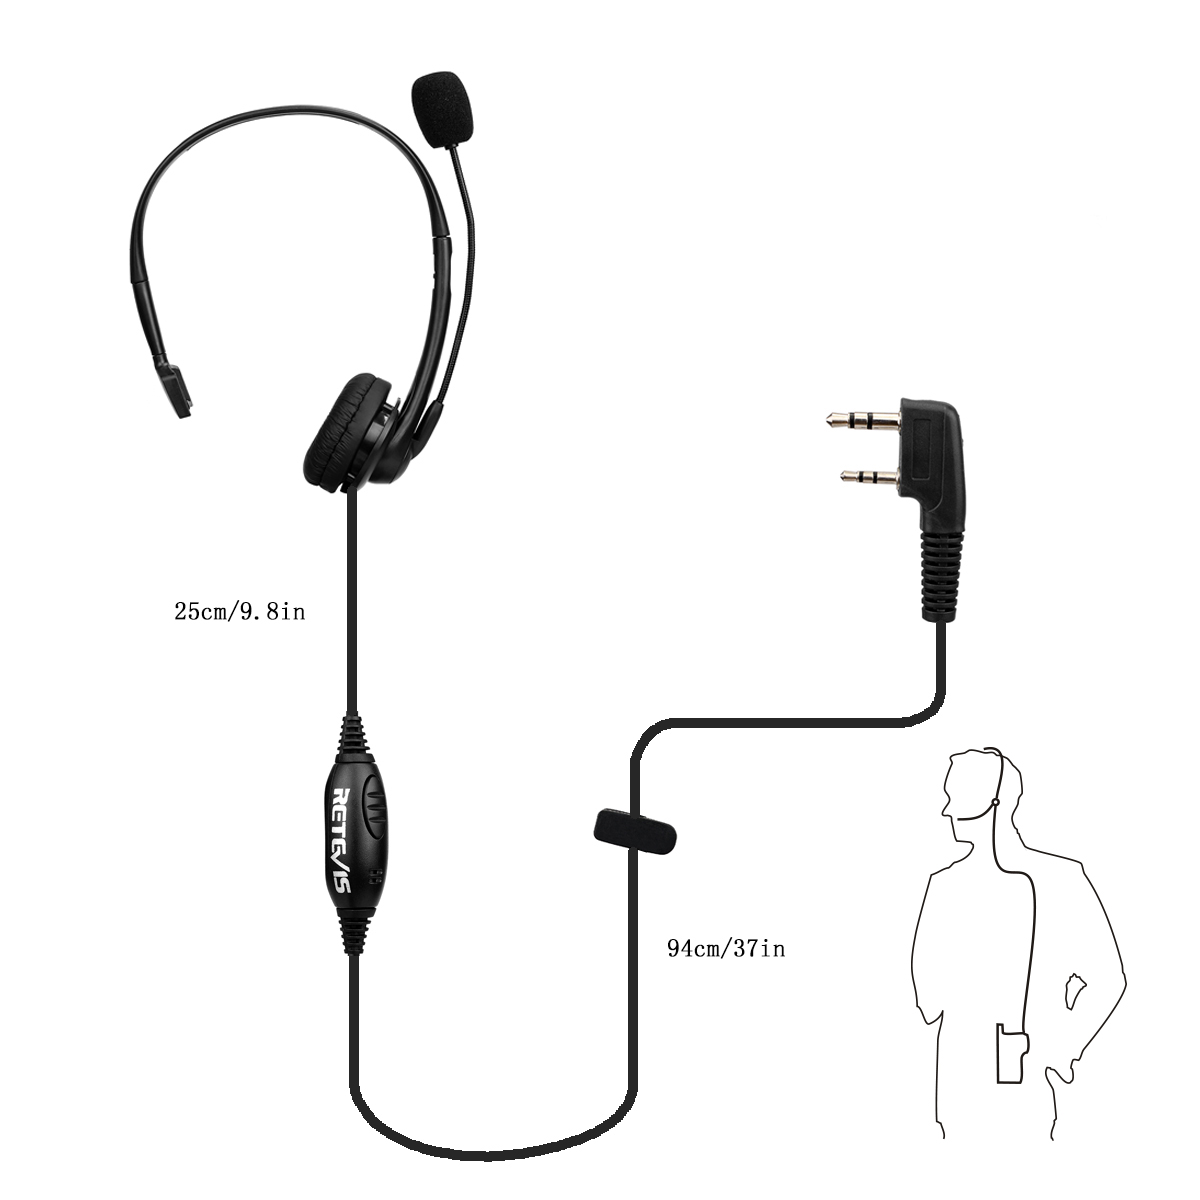 Retevis 2 Pin Ptt Mic Headphone Headset For Kenwood